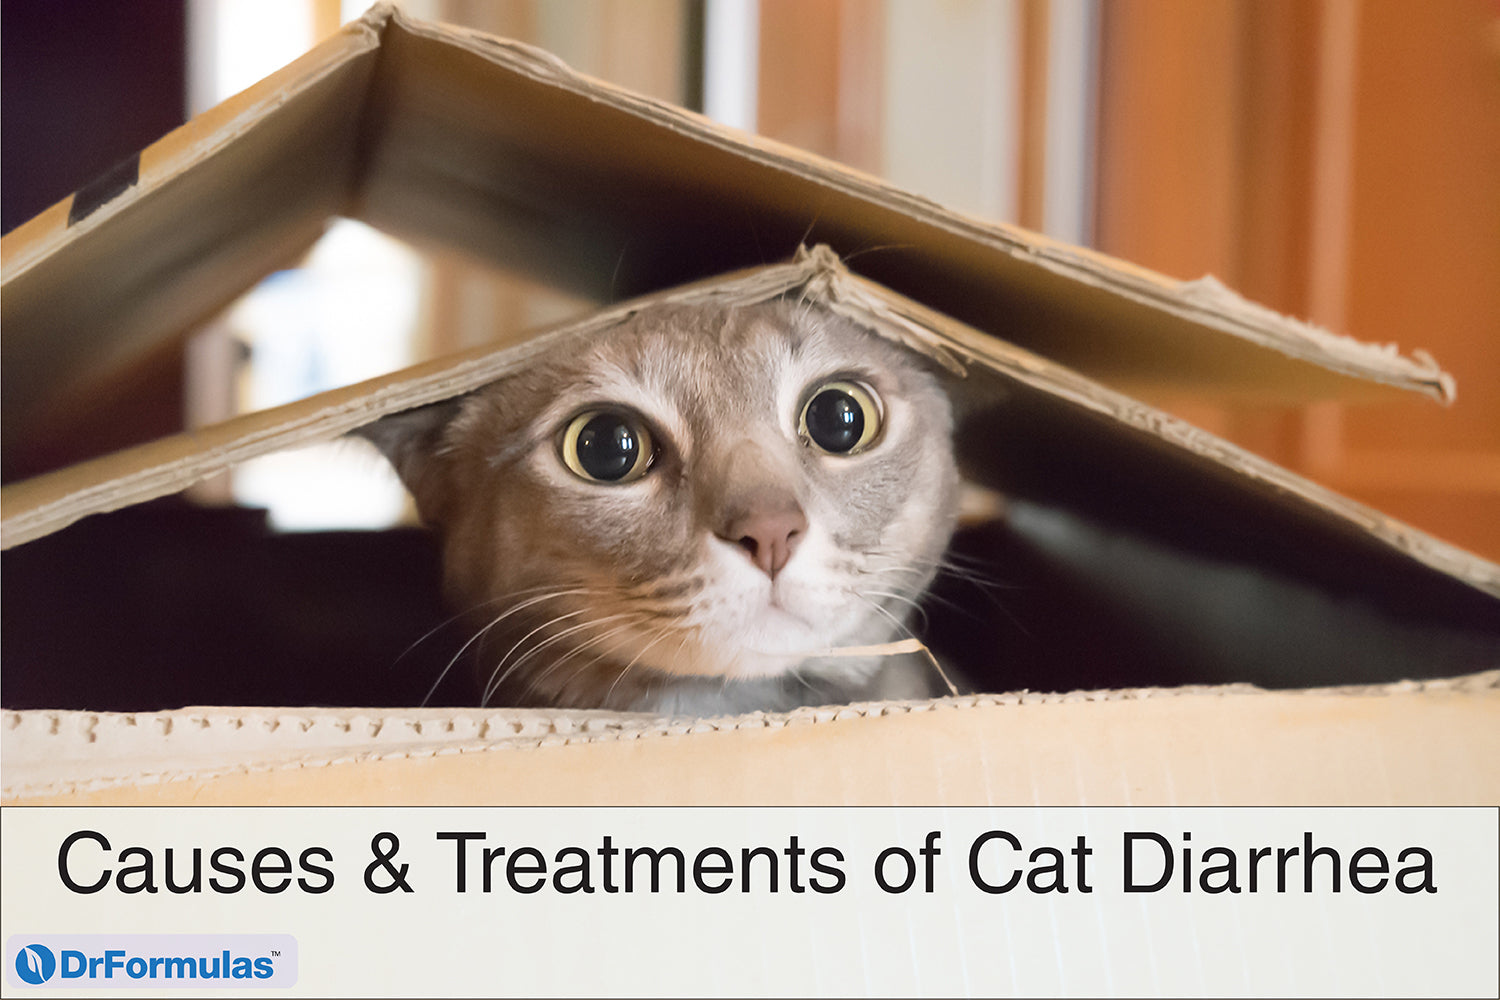 What to give the cat from diarrhea at home, what kind of medicine 2